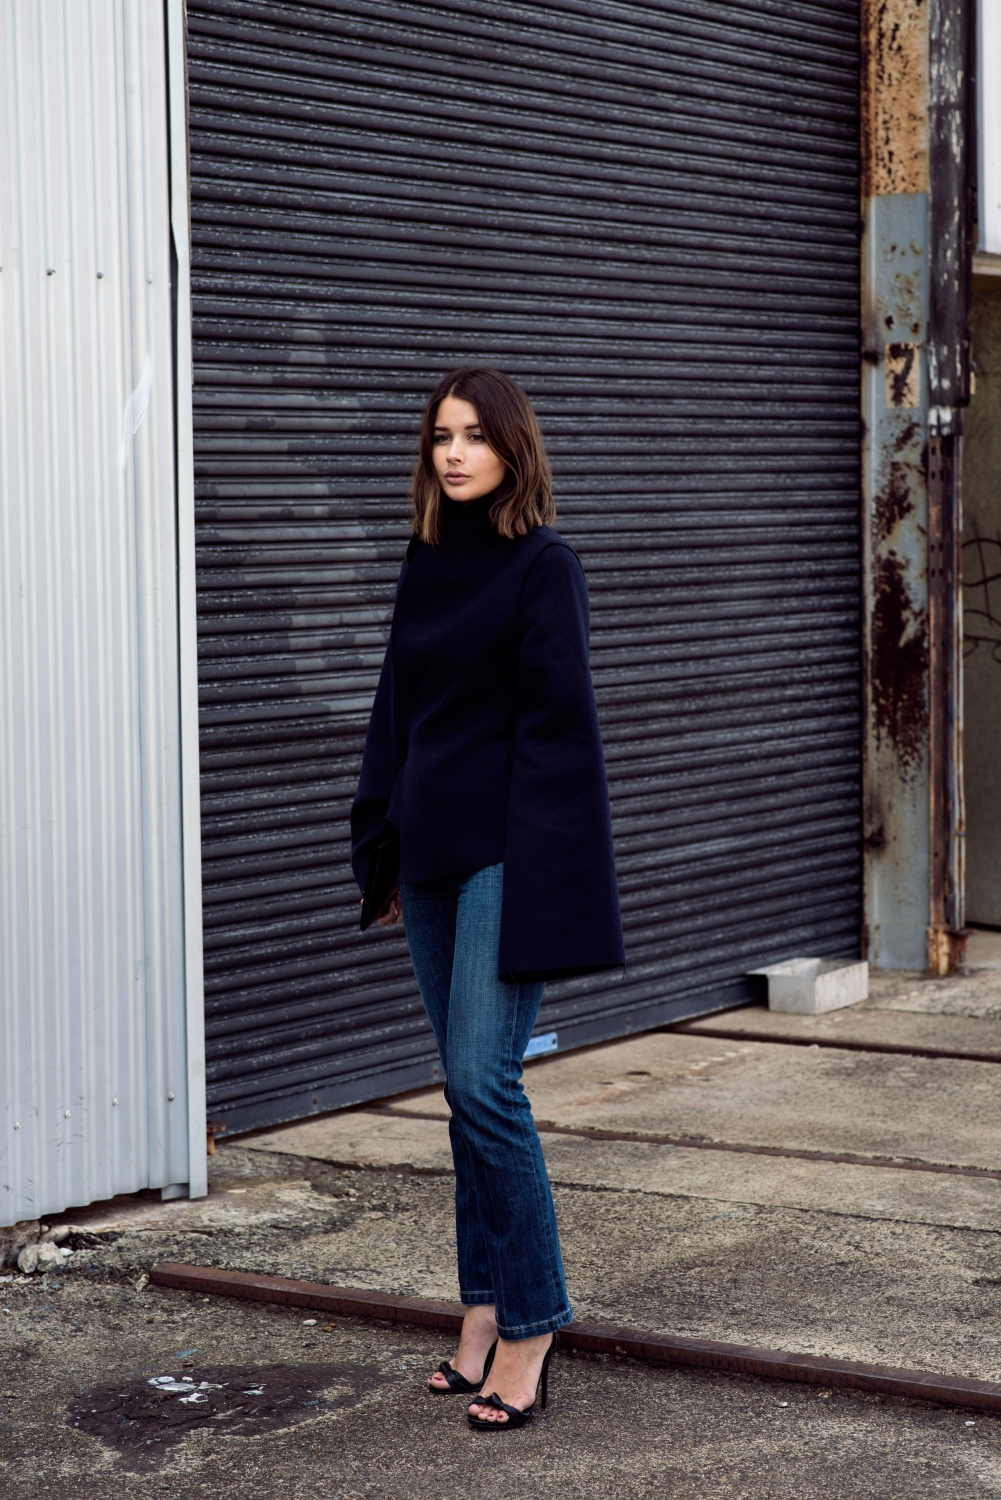 navy blue jacket with extra long sleeves and denim jeans